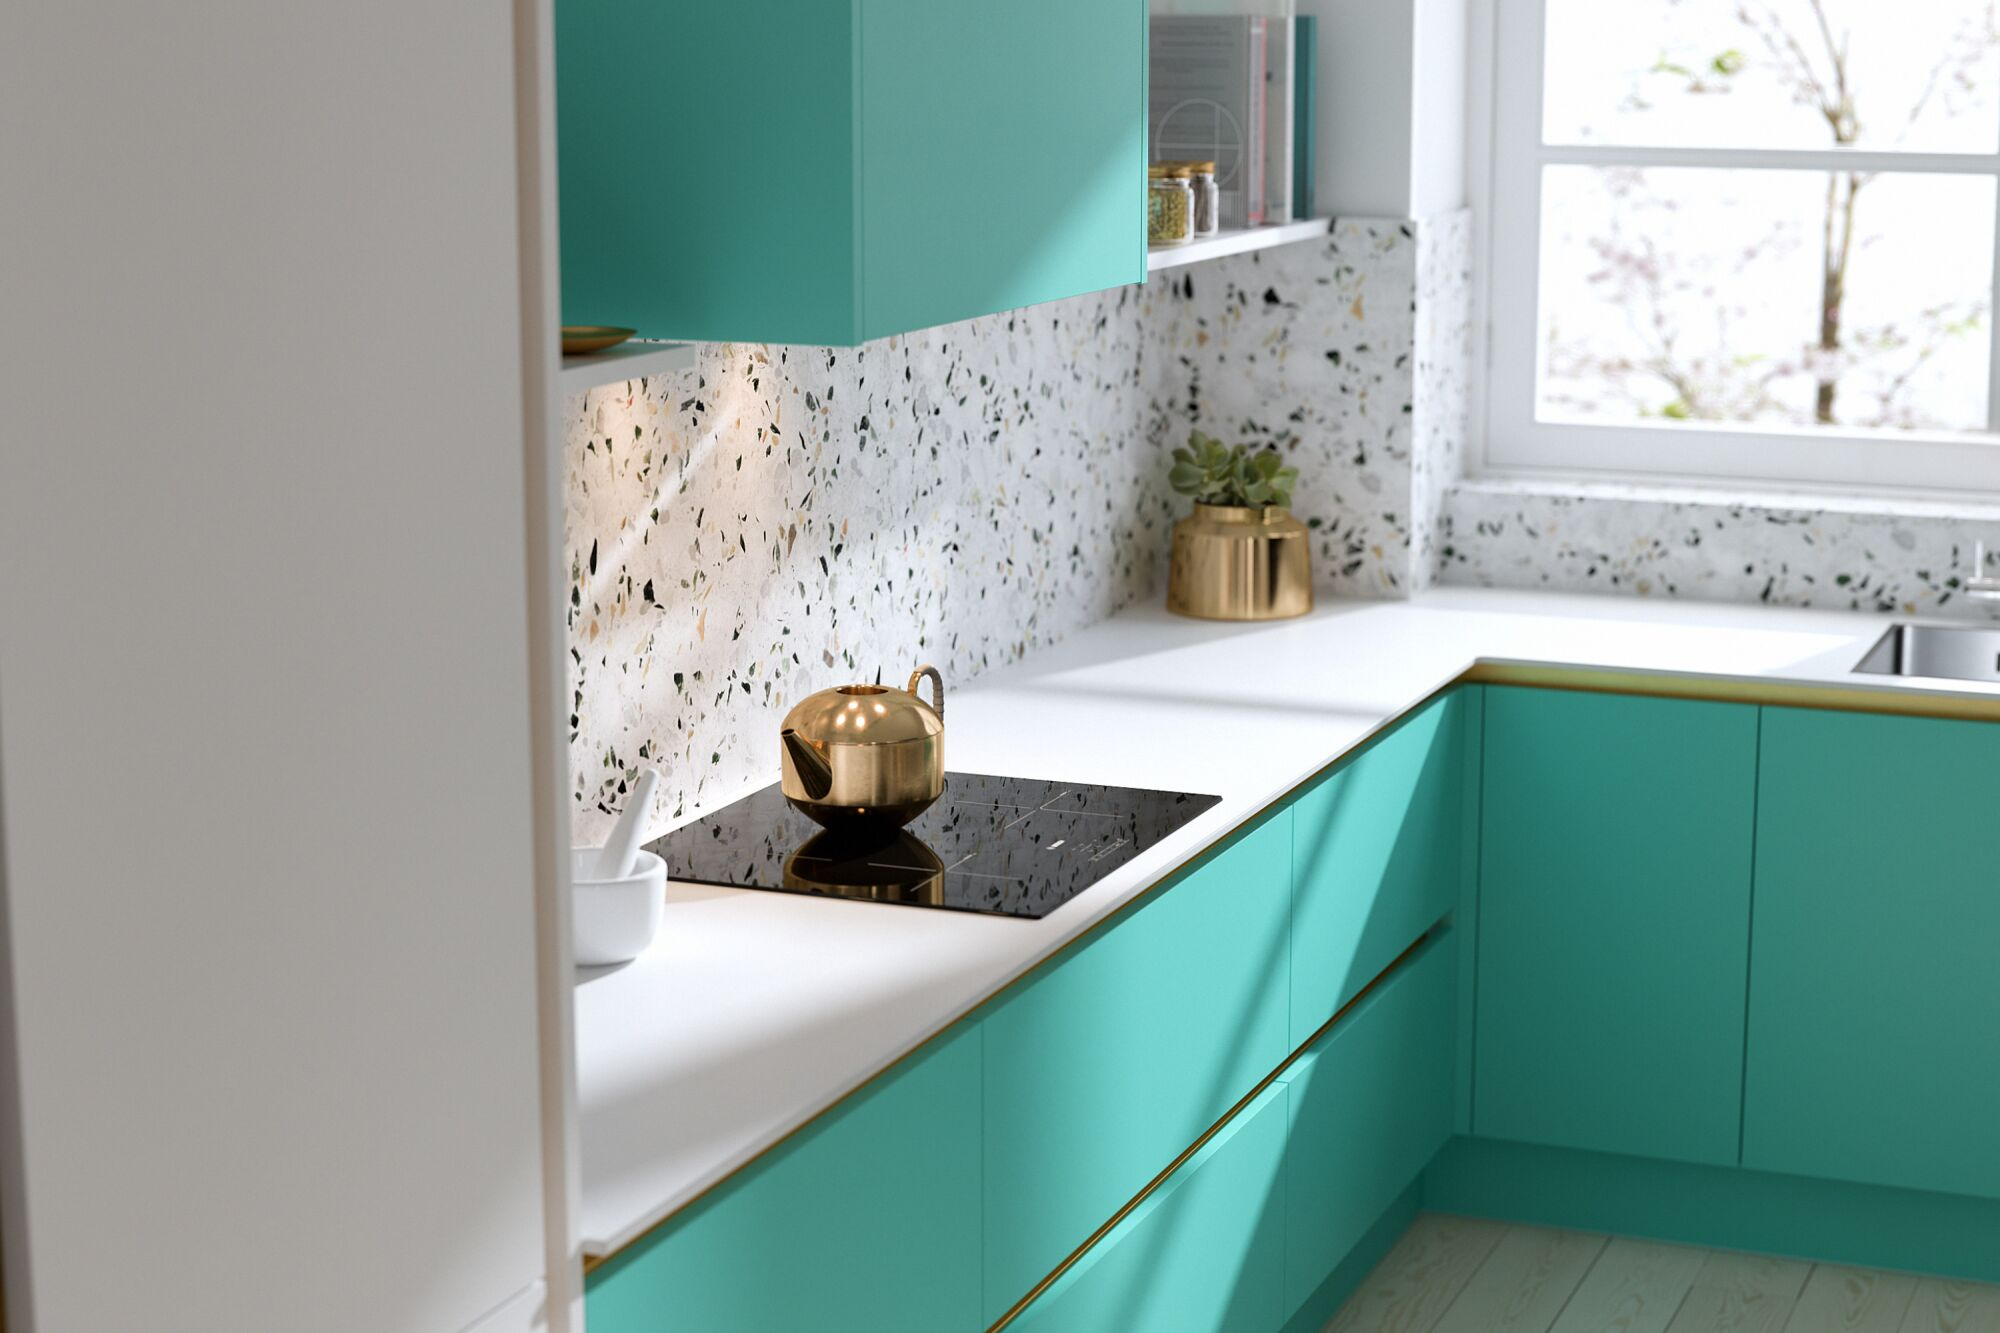 Milano Contour Ermine in Spearmint | Wren Kitchens